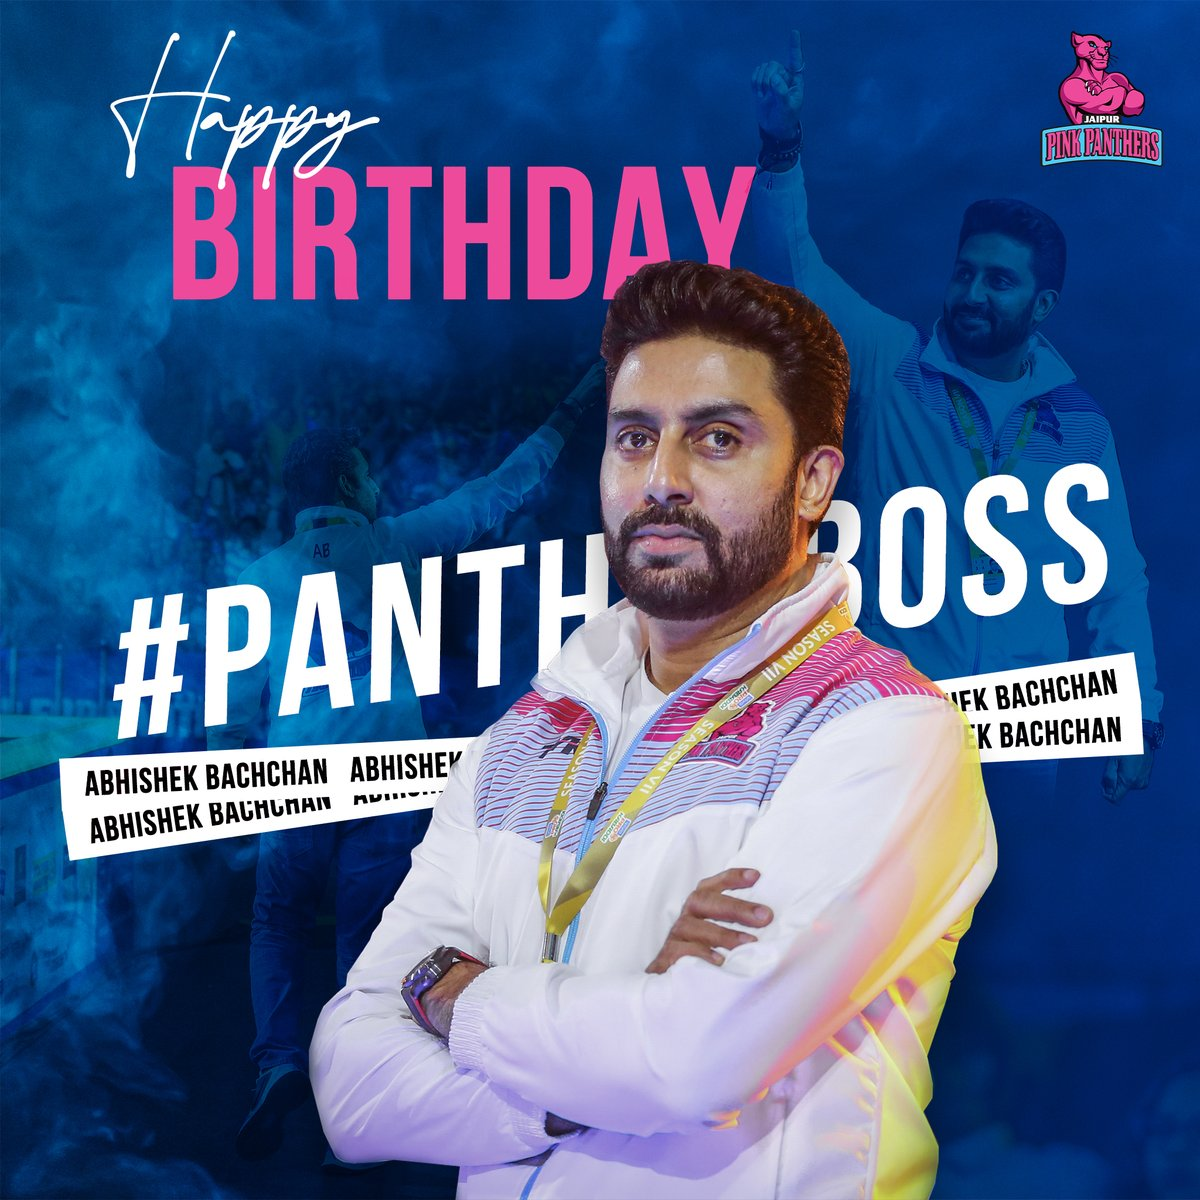 Wishing a very happy birthday to our biggest supporter and the strongest pillar! Your ingenuity strikes a chord within all of us #Panthers! May you get inspired and keep inspiring others on your birthday @juniorbachchan 🎂🥳🙏🏻  #HappyBirthday #PantherBoss #JaipurPinkPanthers